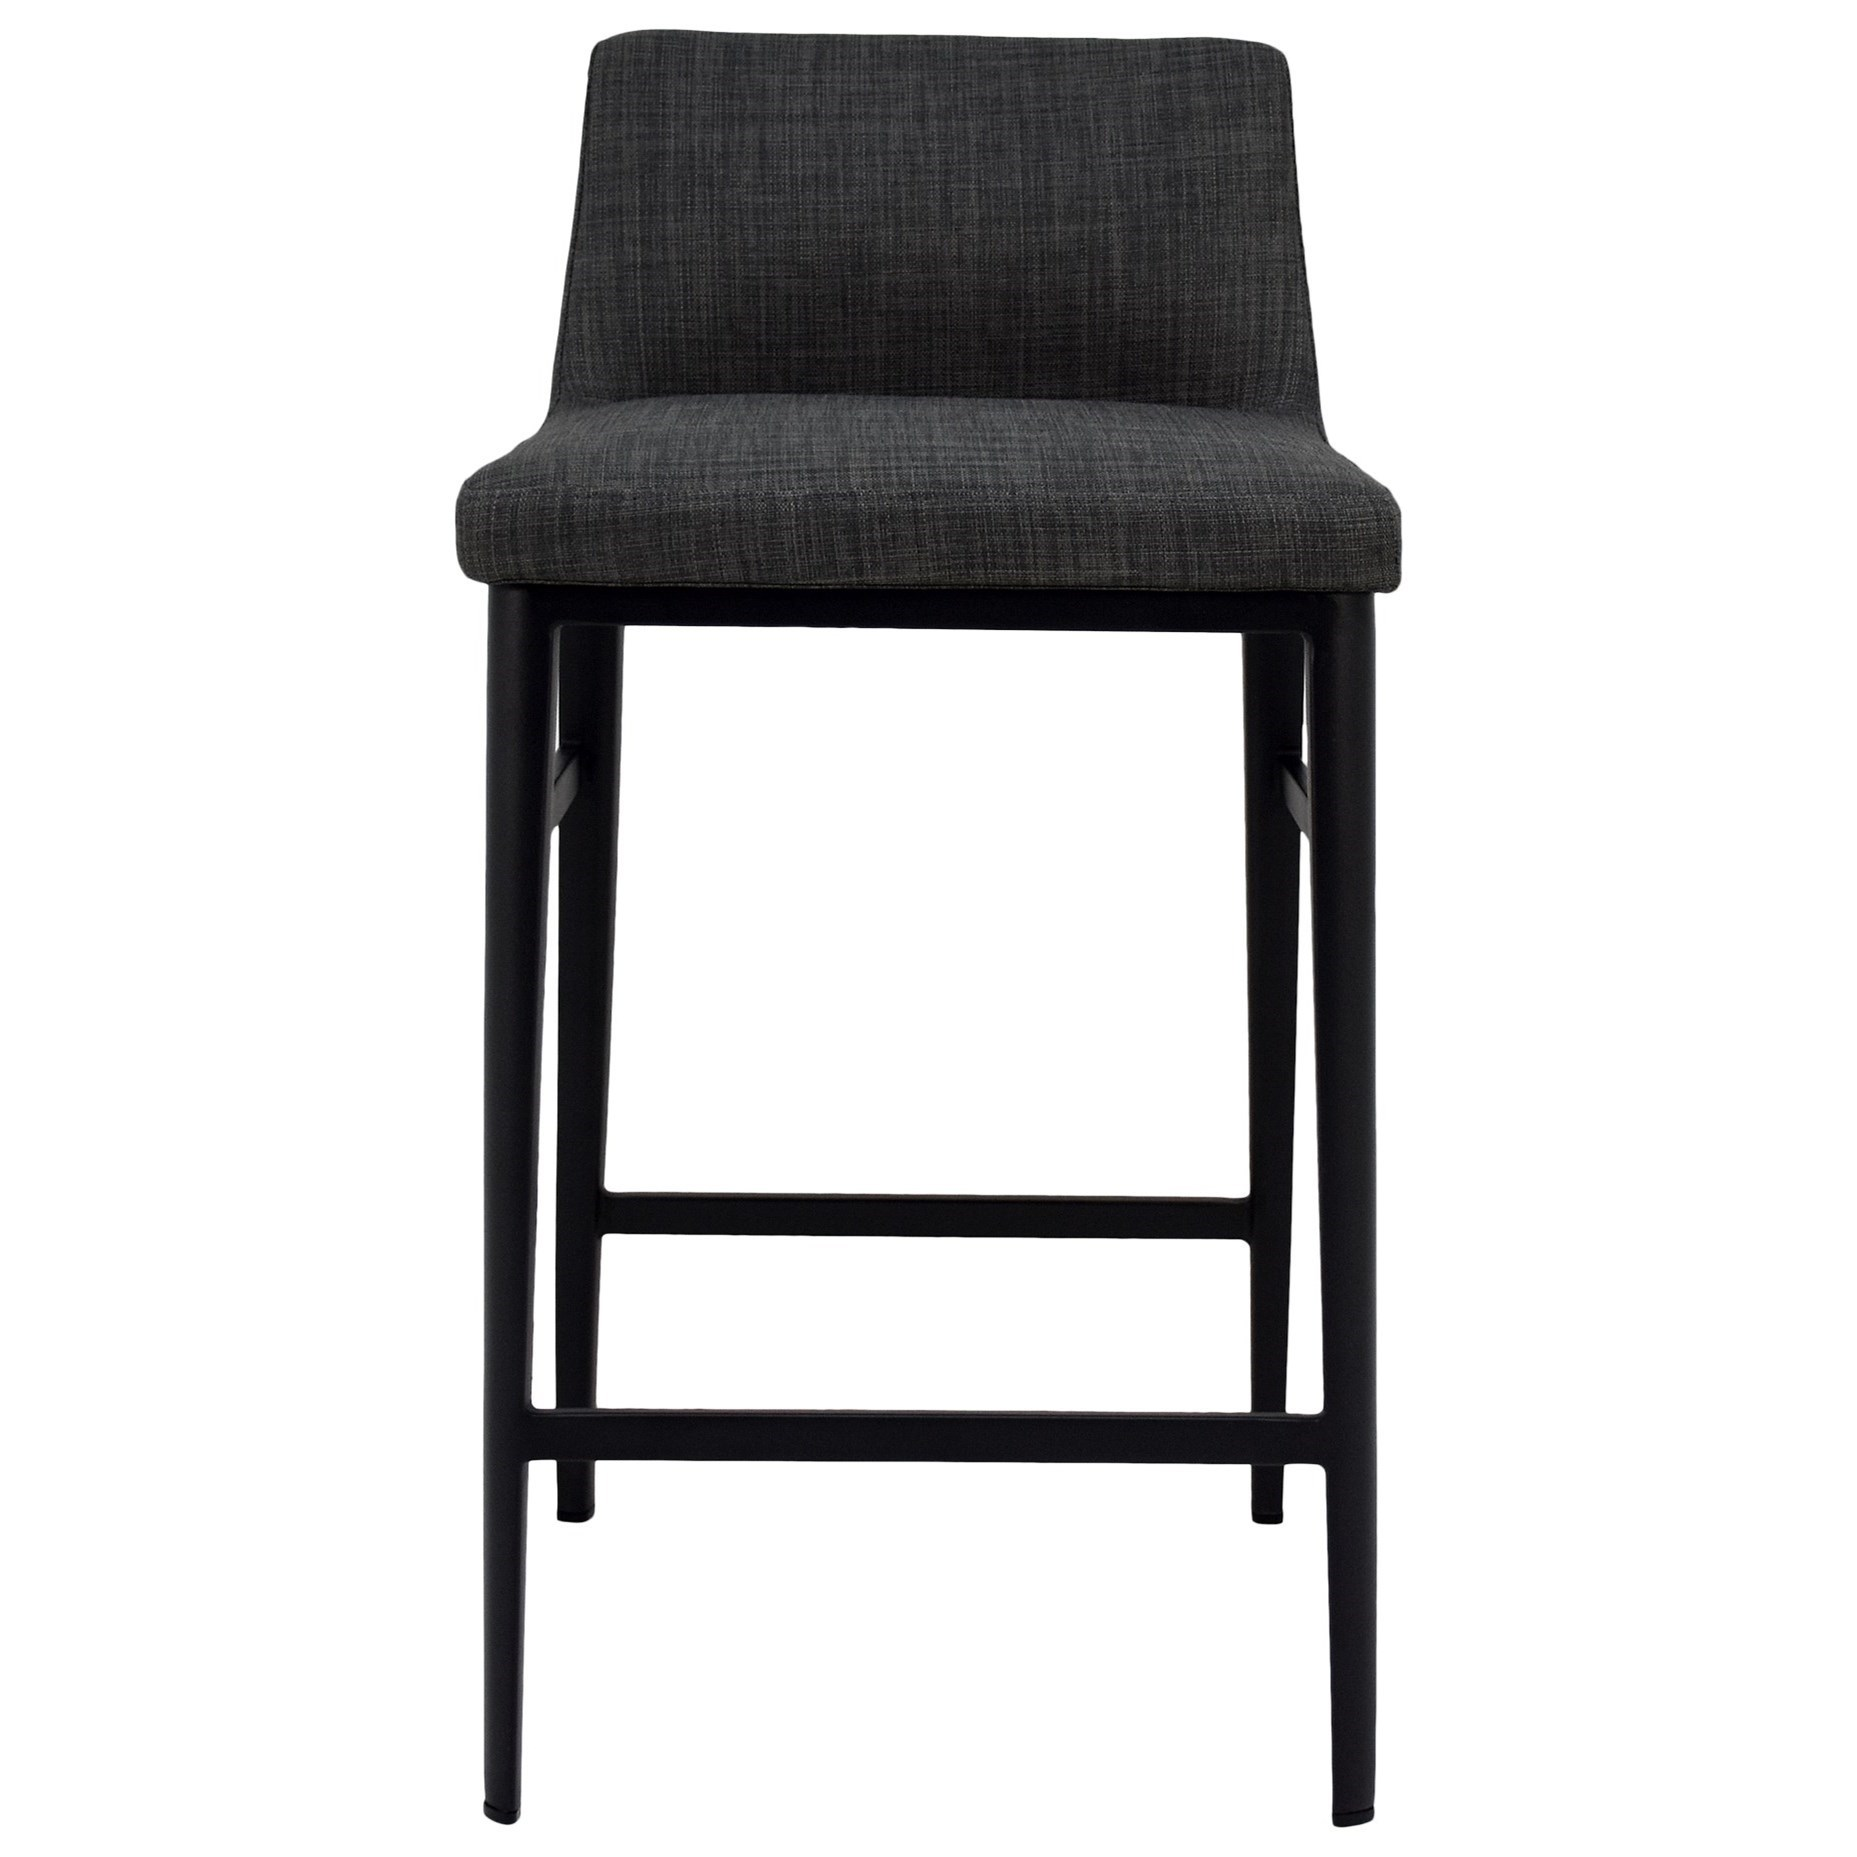 Baron Charcoal Mid-Century Modern Counter Stool by Moe's Home Collection at Fashion Furniture